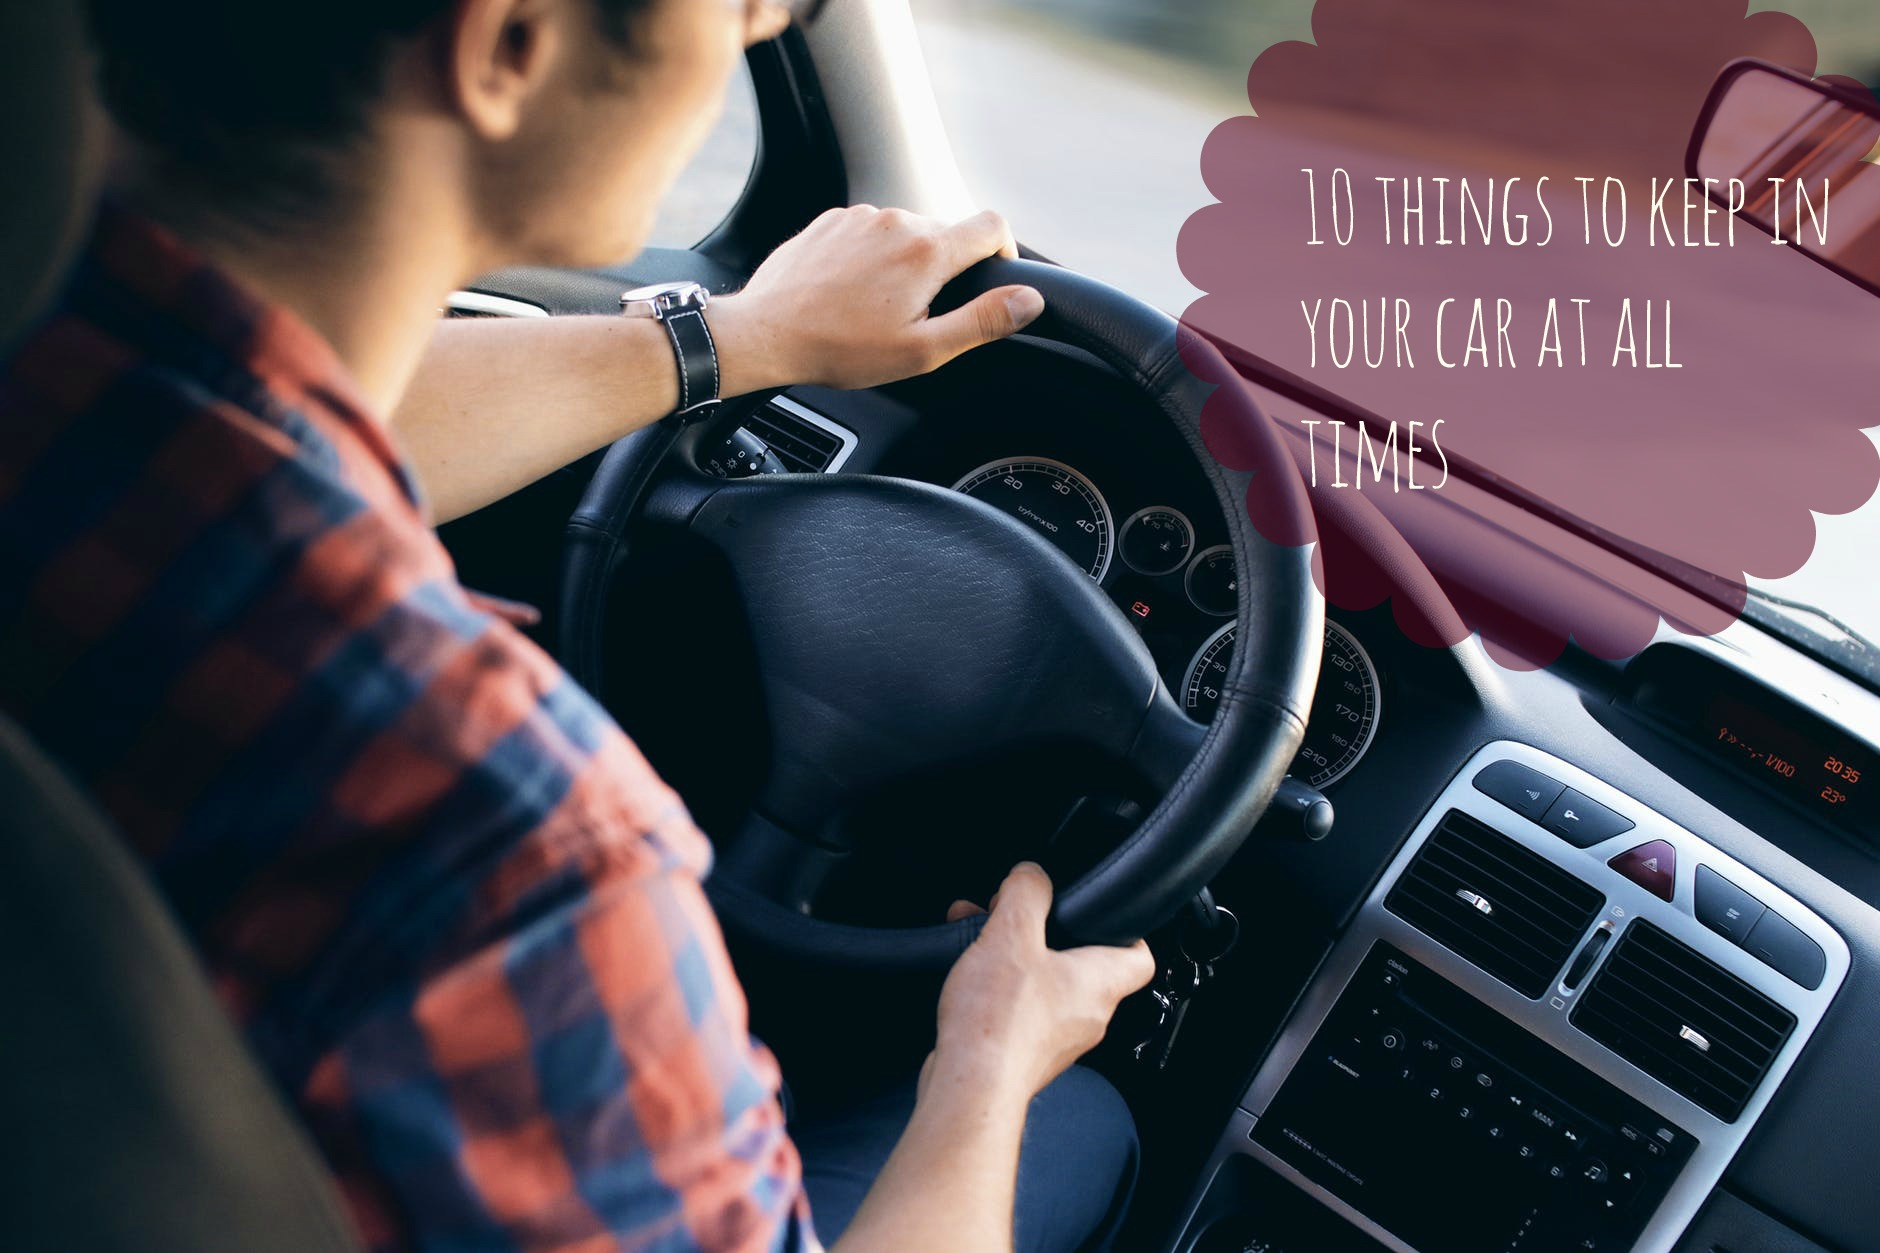 10 Things to Keep In Your Car At All Times